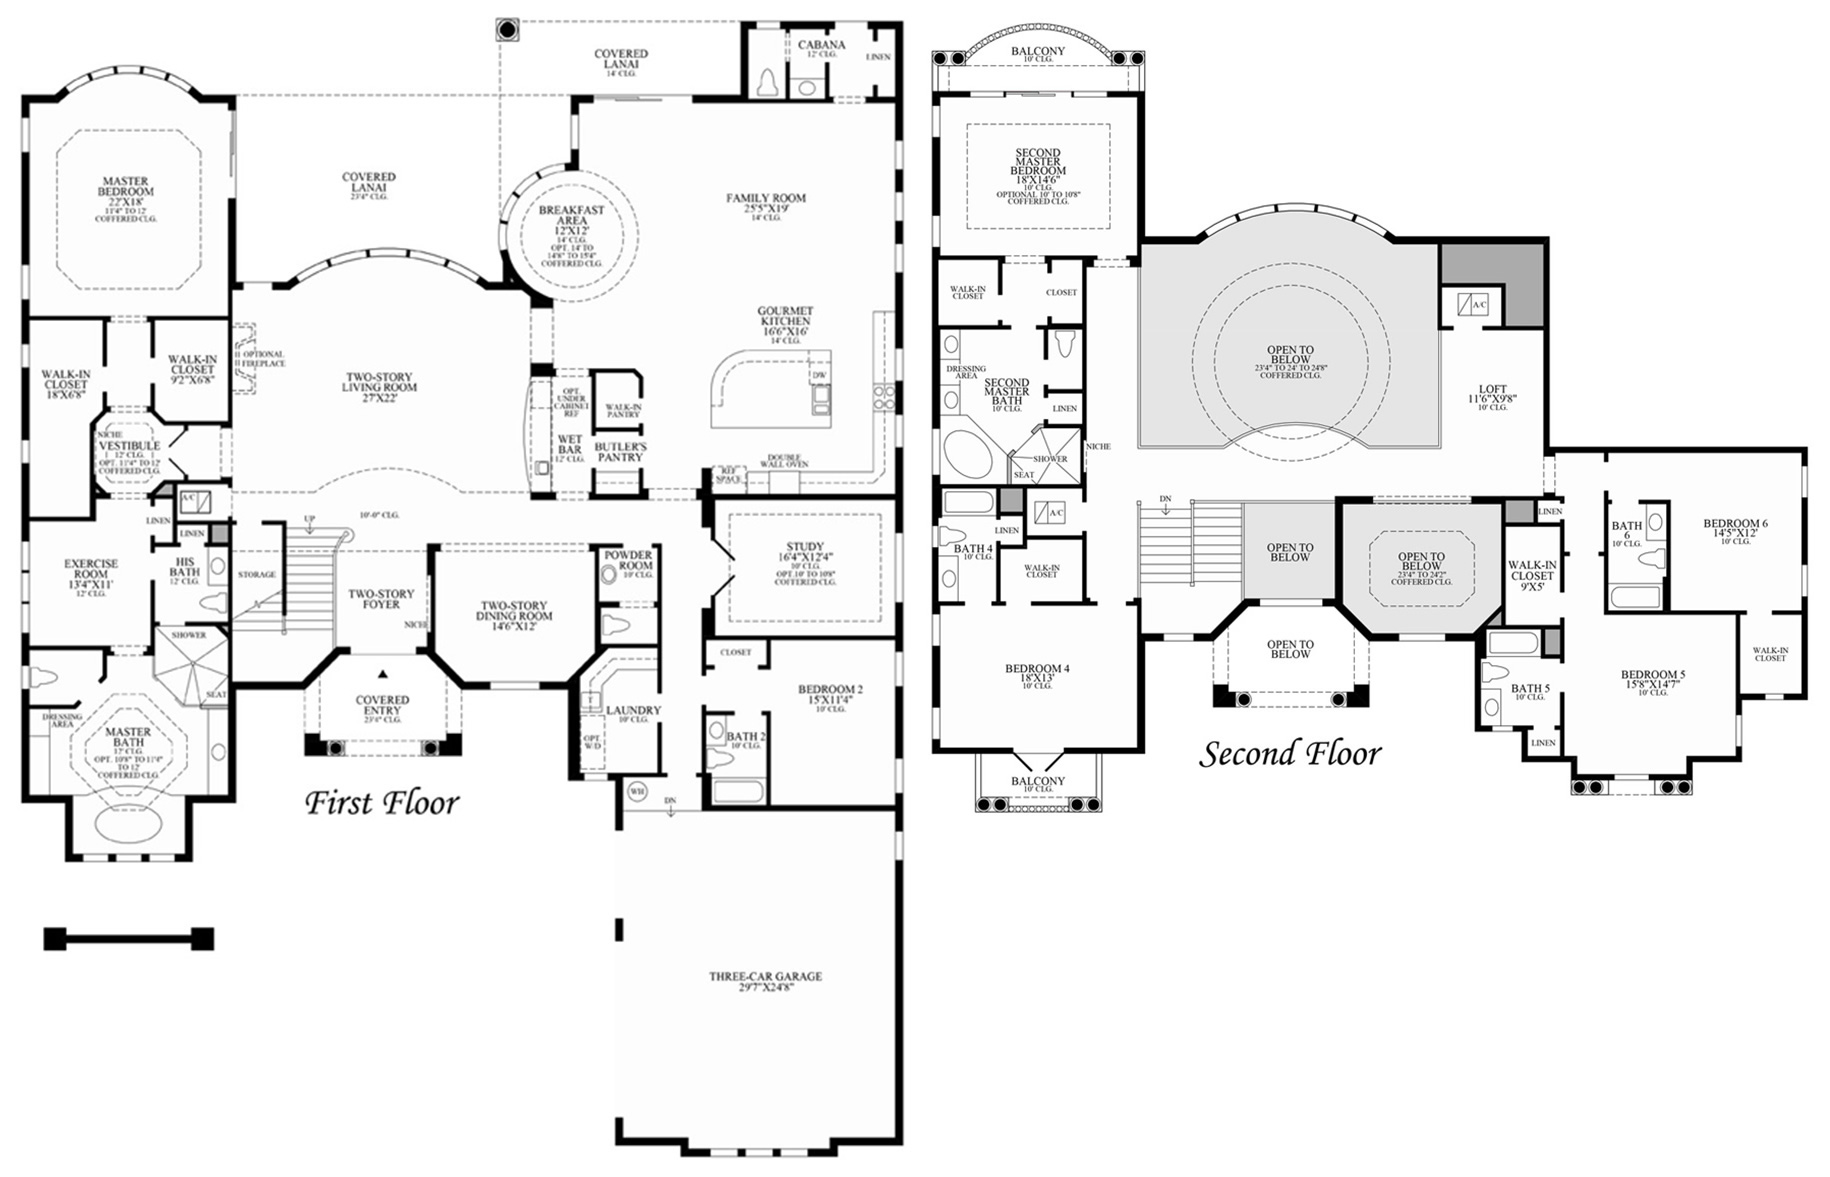 View floor plan. Bellaria in Windermere is a new community of luxury homes in Orlando